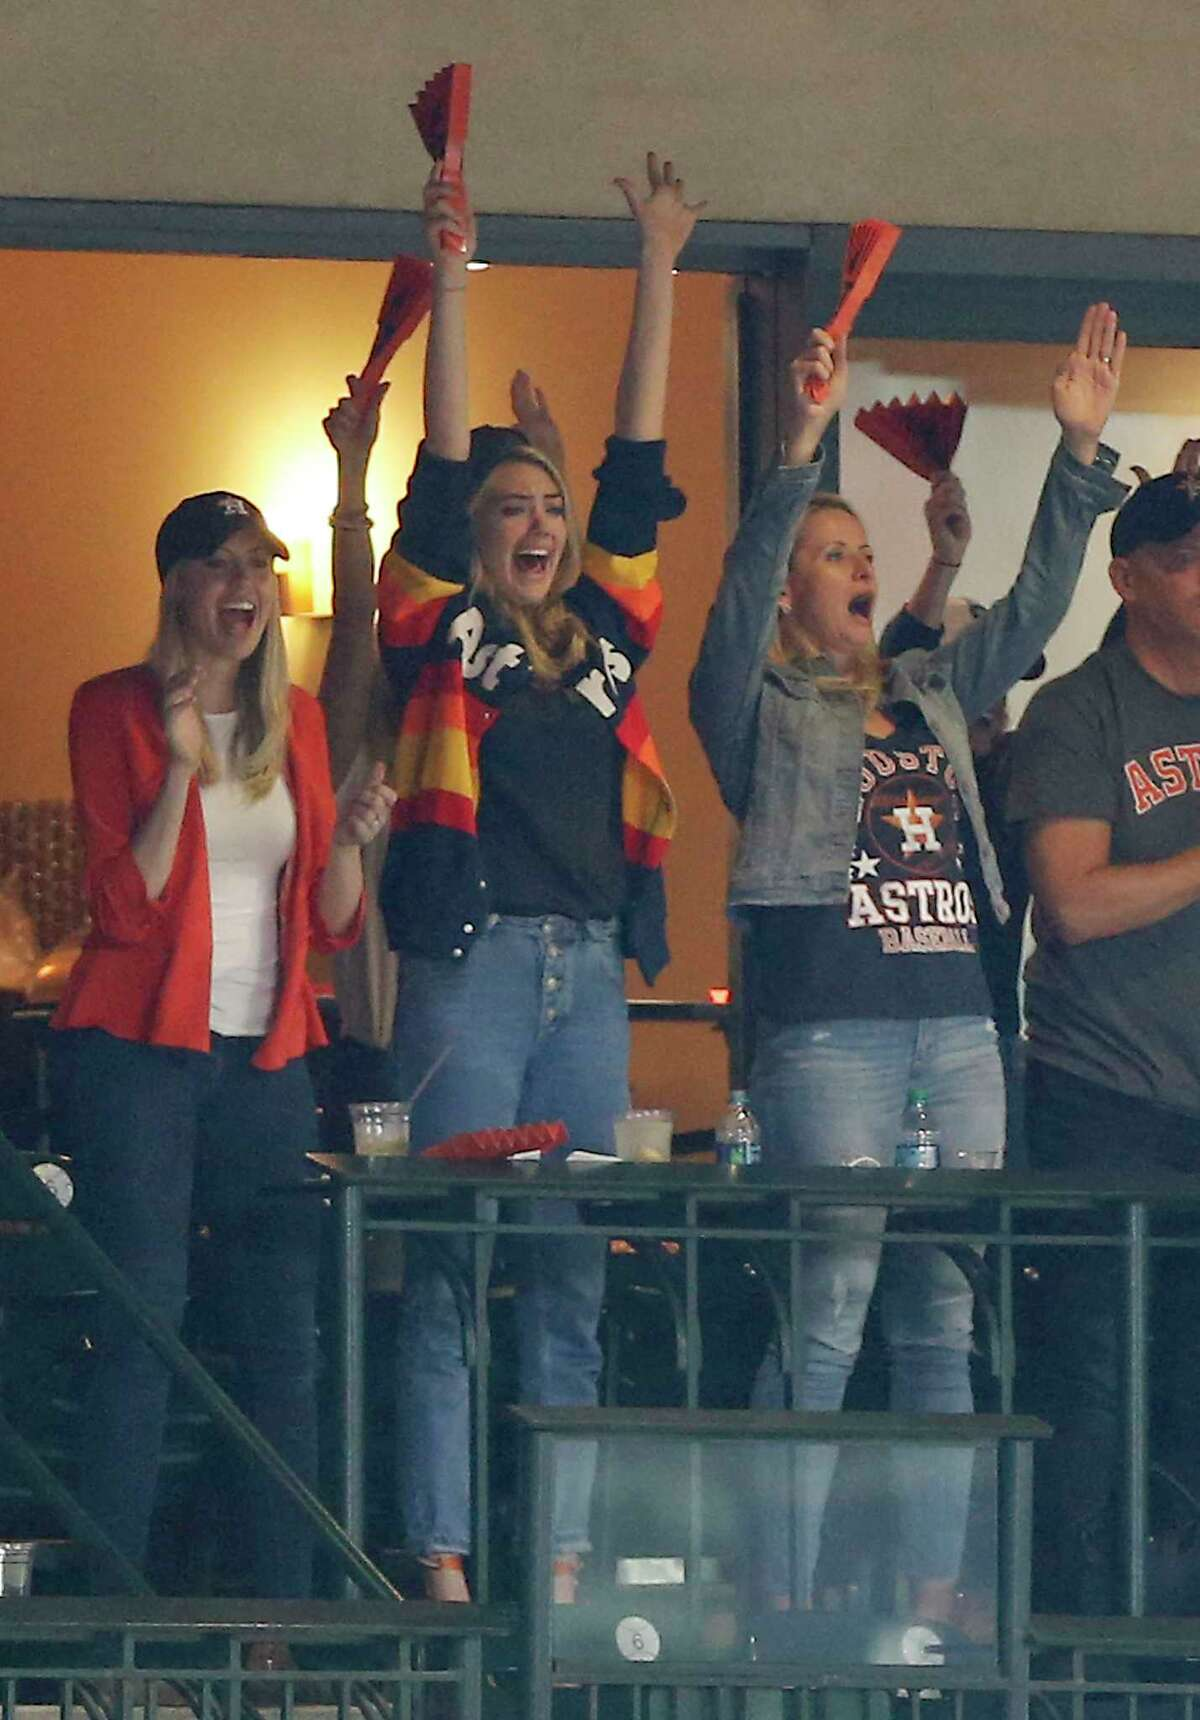 Count Kate Upton as a celeb fan of the Astros. Model Kate Upton (C) cheers for the Houston Astros from a suite at Minute Maid Park. Scroll through to see more celebrities for Houston sports teams.